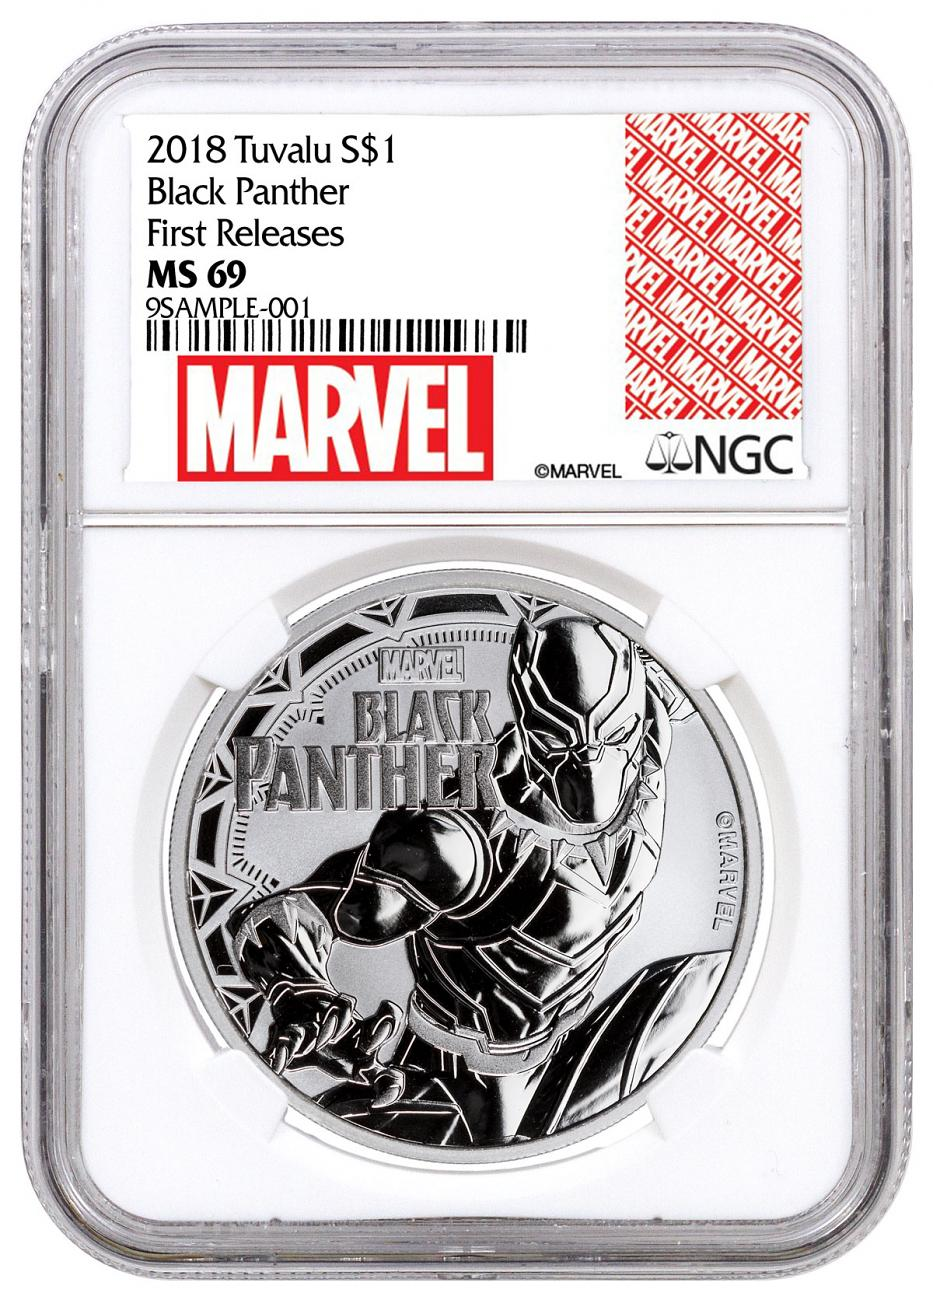 2018 Tuvalu Black Panther 1 oz Silver Marvel Series $1 Coin NGC MS69 FR Exclusive Marvel Label